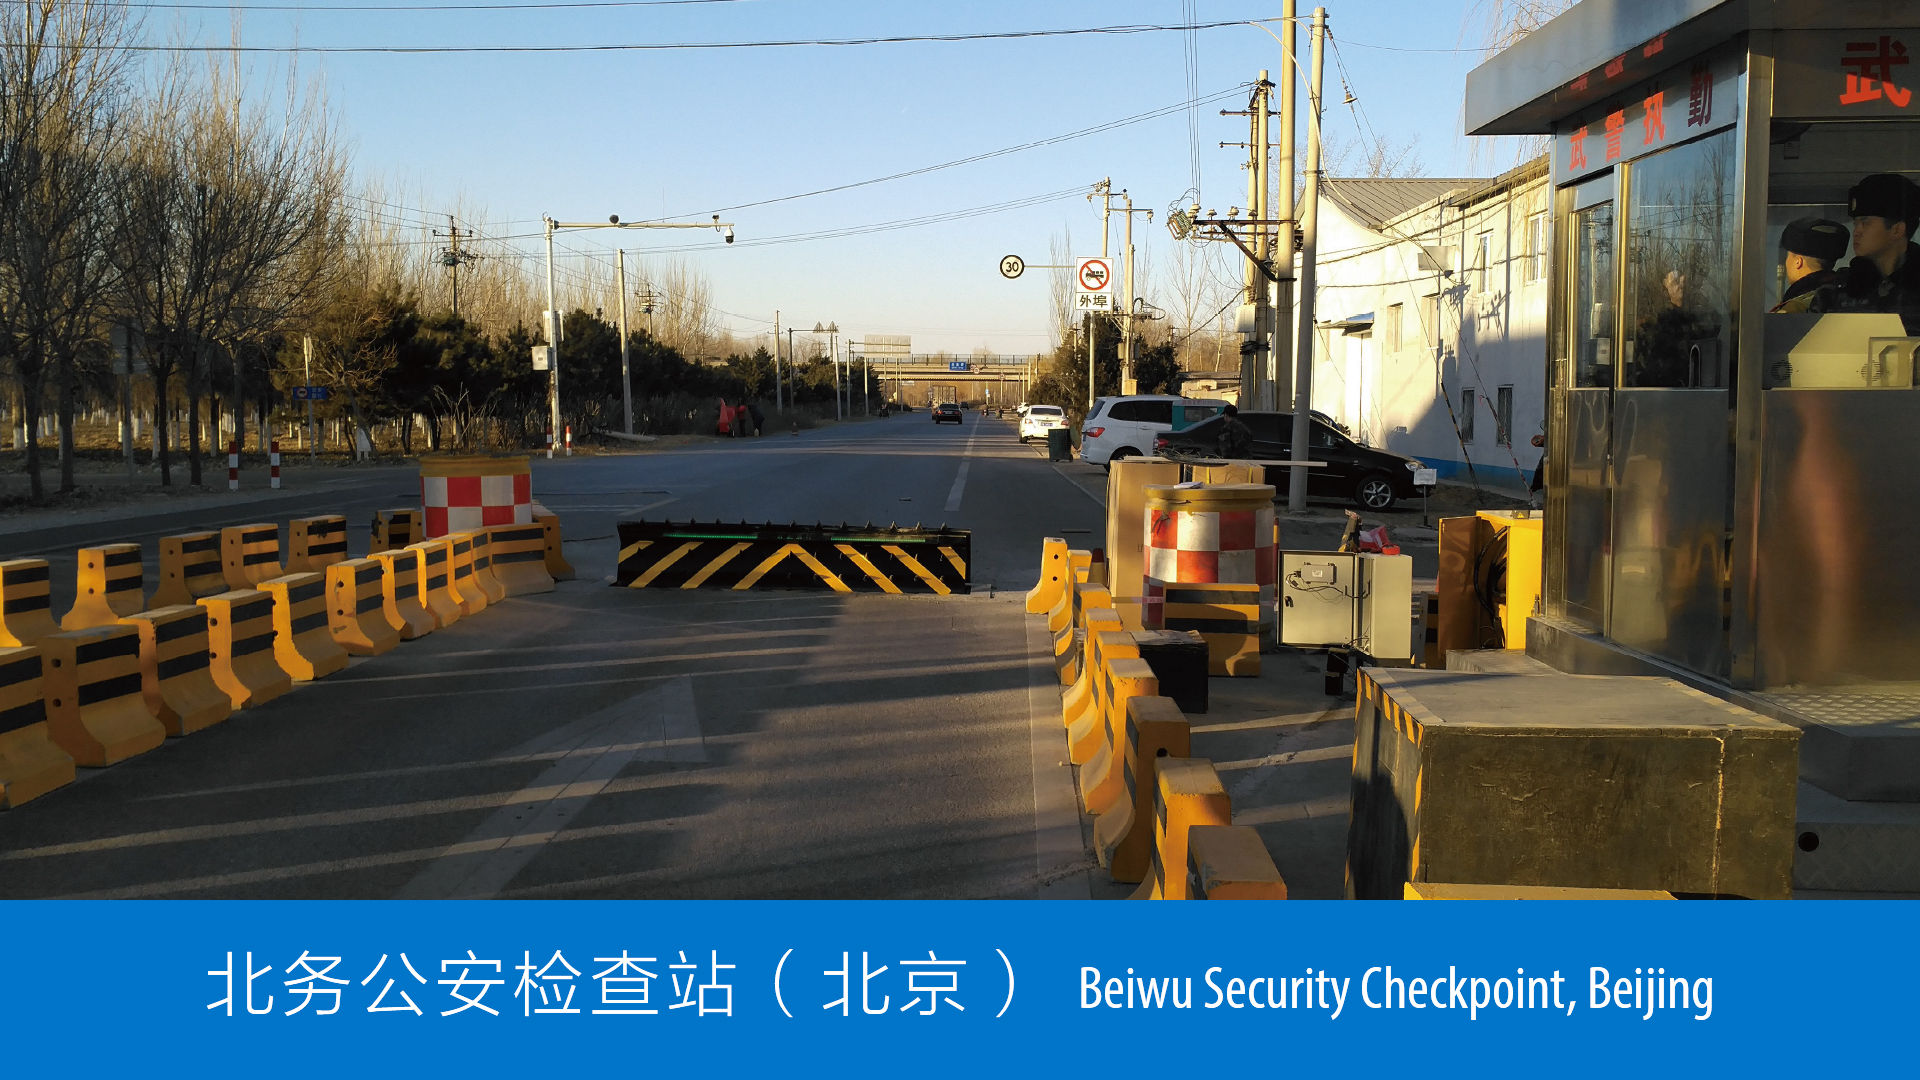 Road blocker - Security Checkpoint